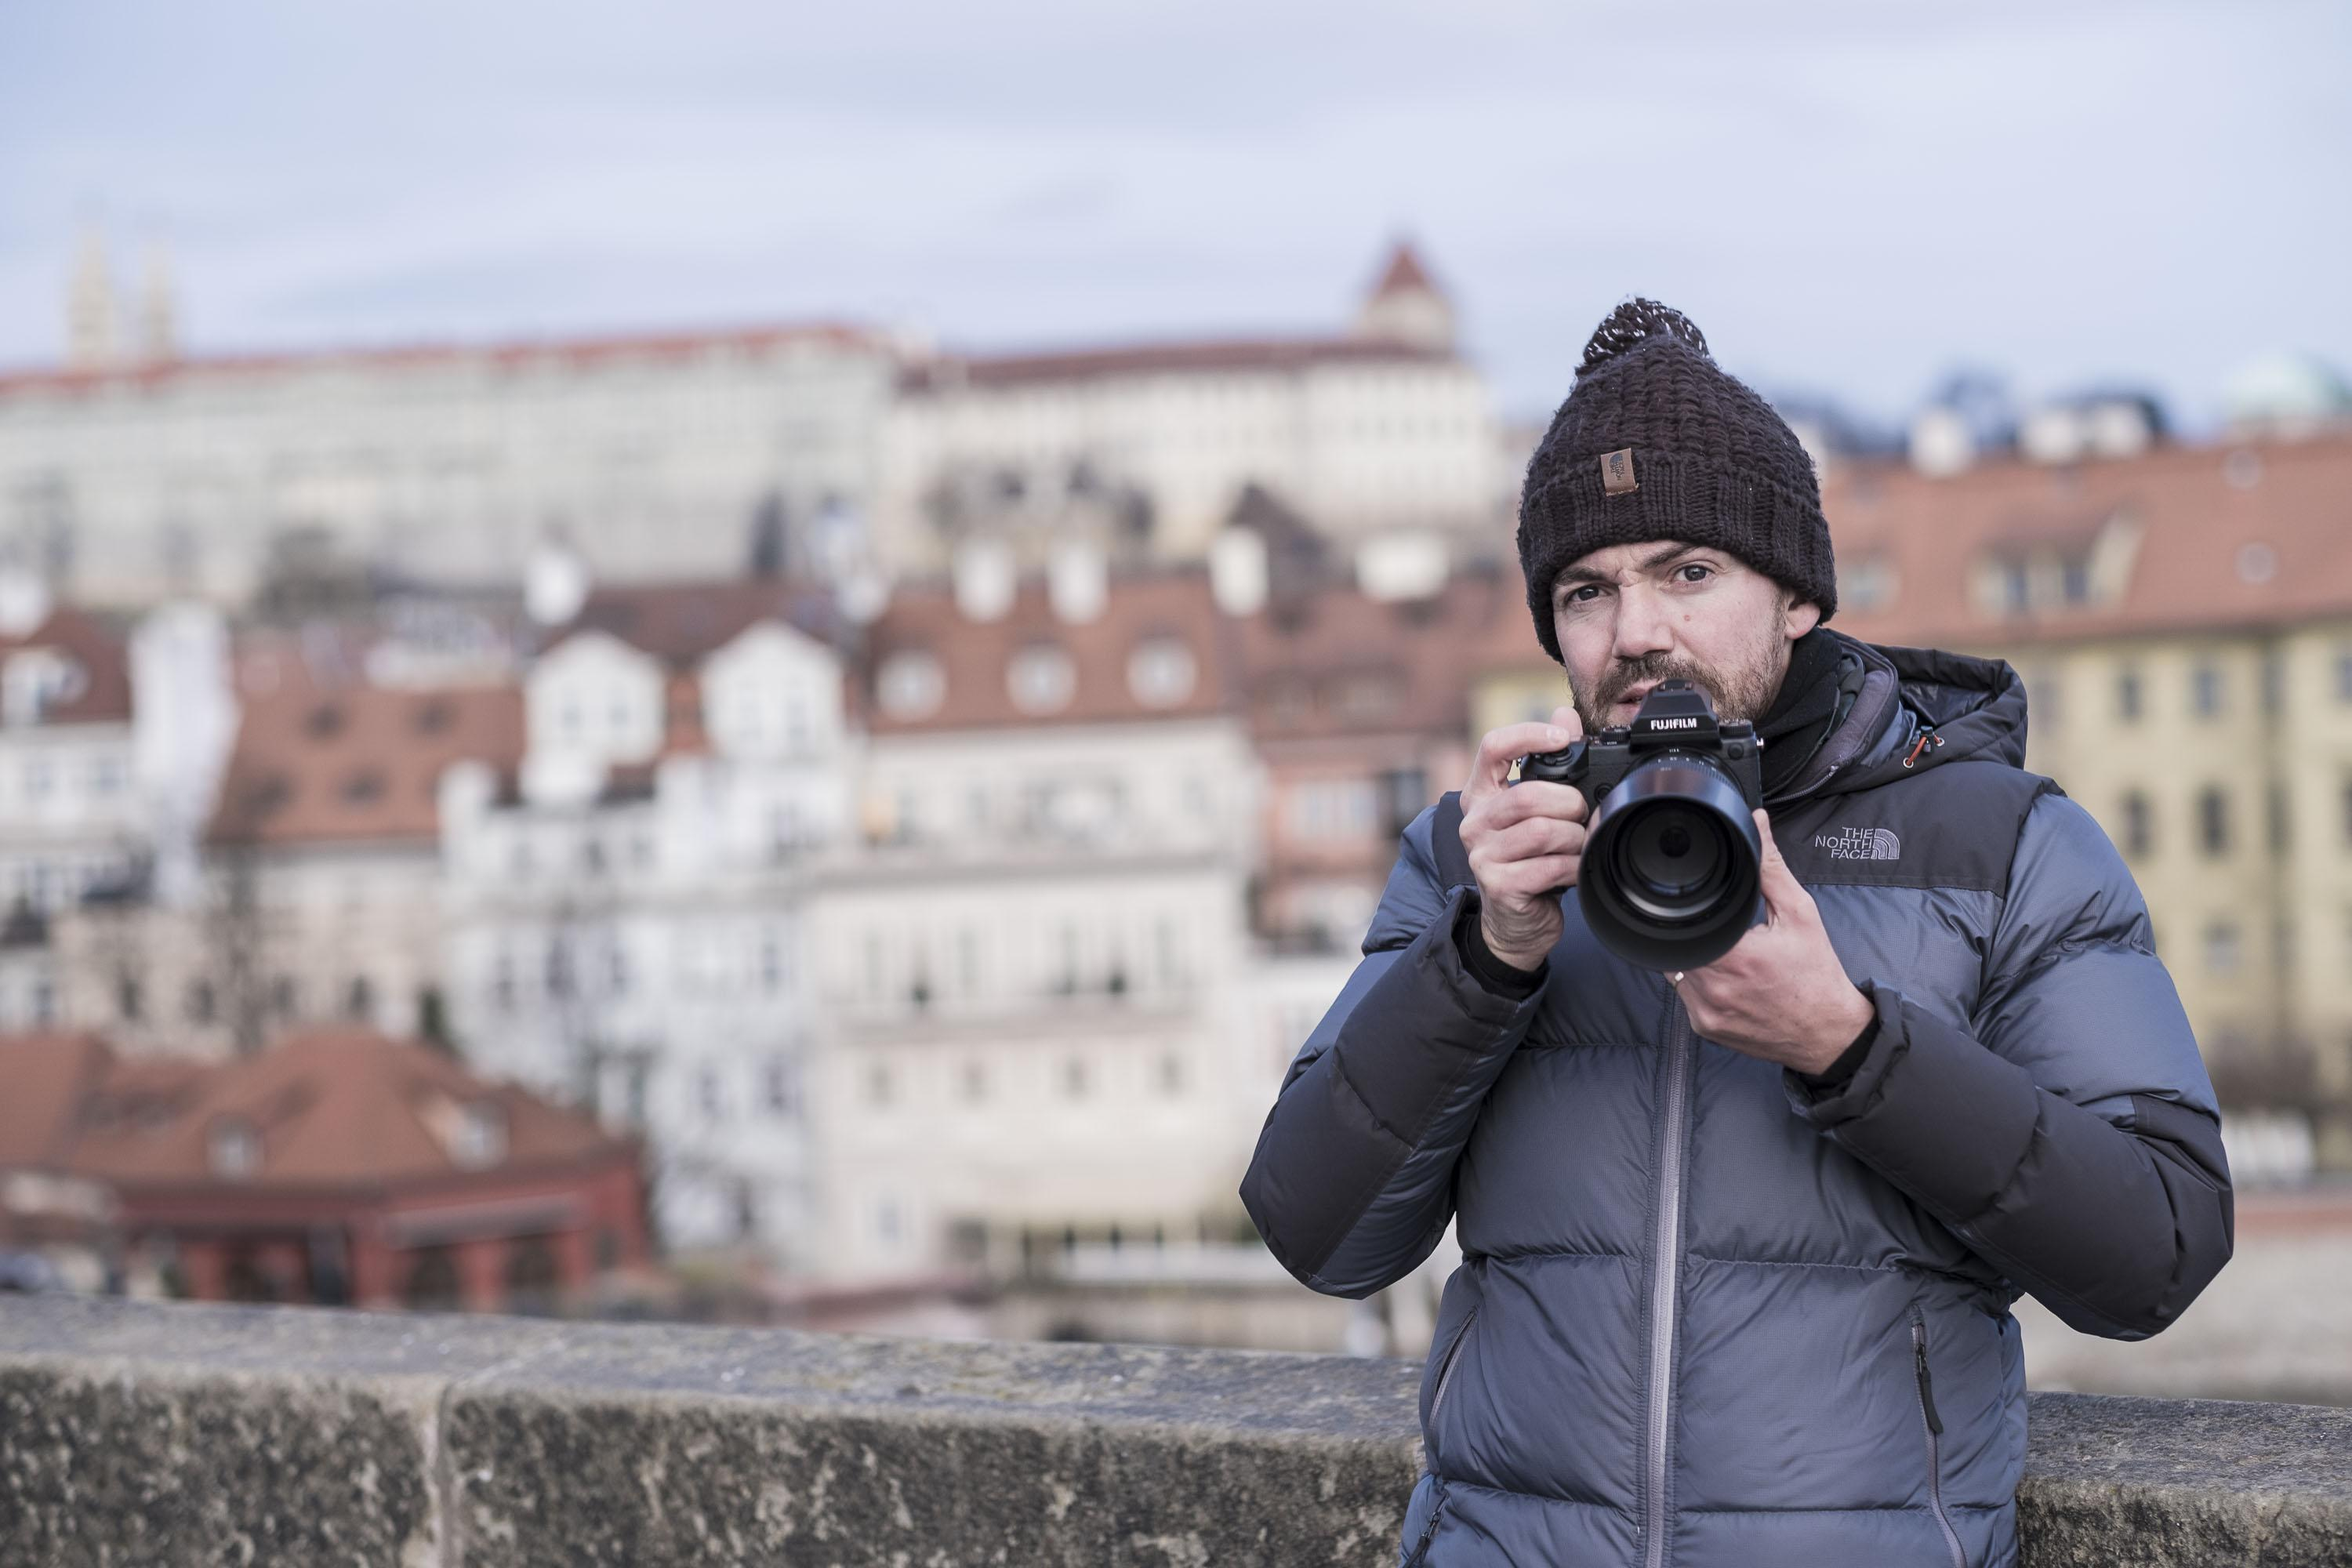 travel photography workshop The North Face Winter Clothing Jose Jeuland Singapore jacket hat fujifilm GFX prague